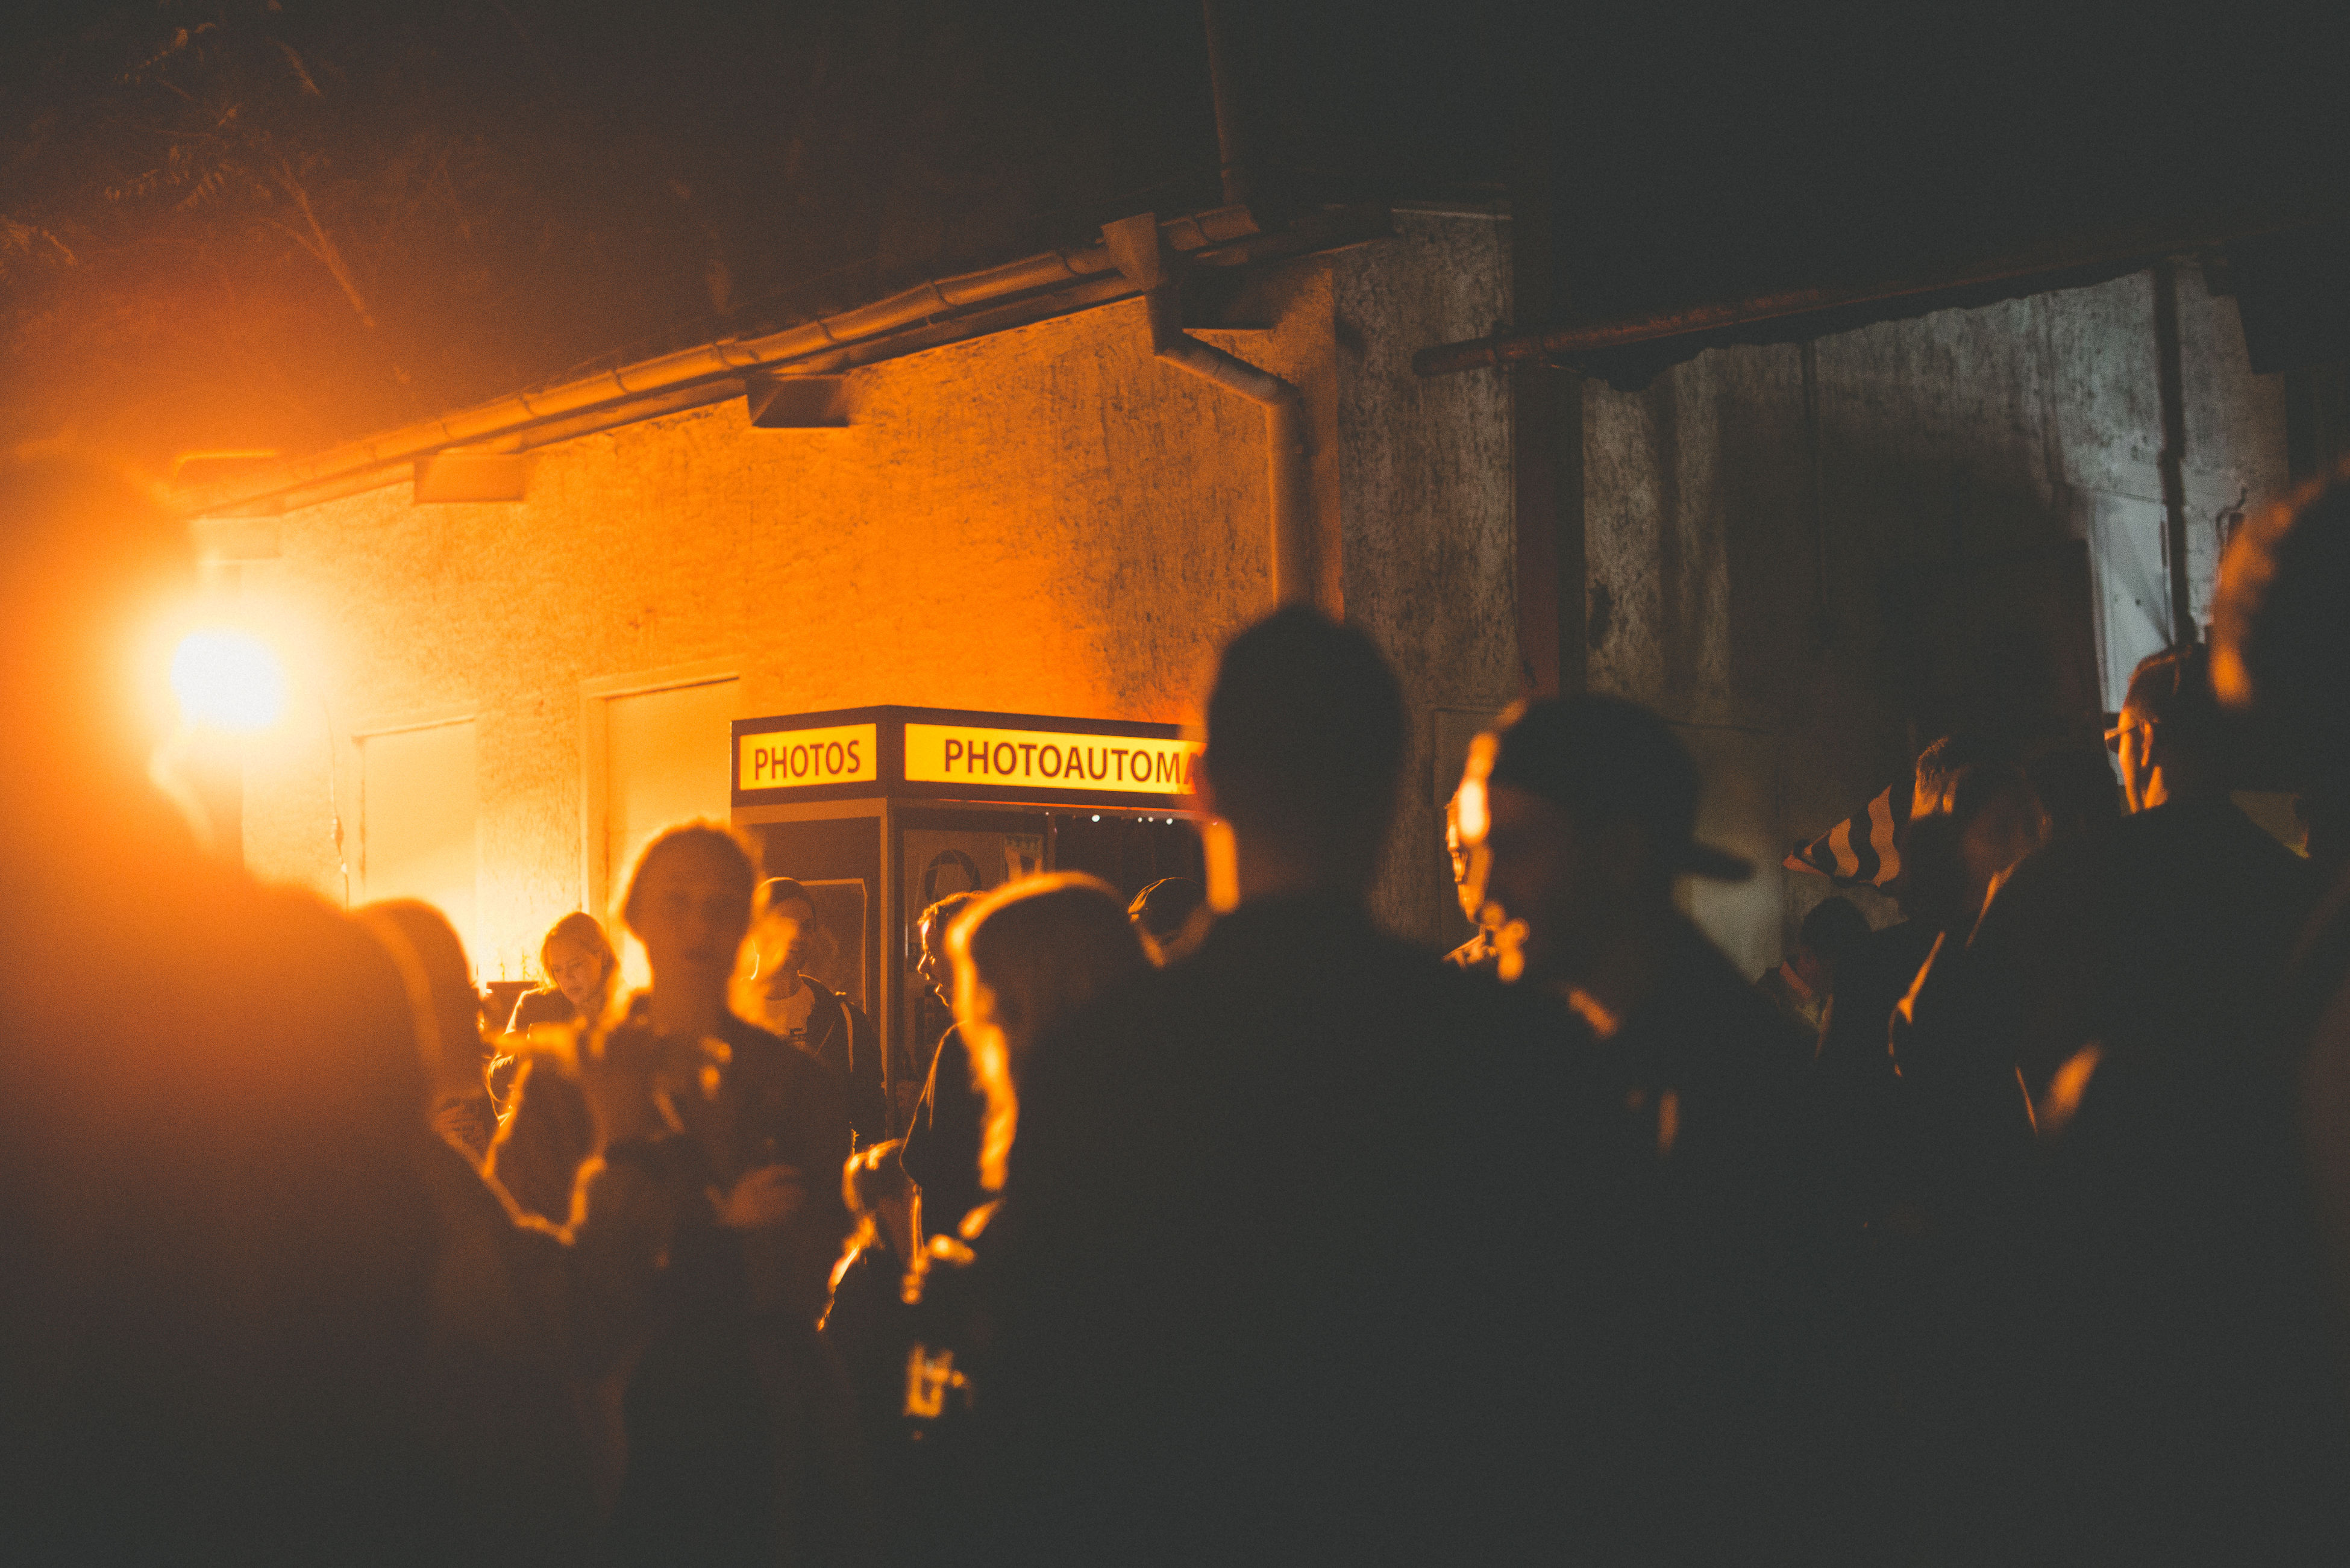 lifestyles, men, illuminated, leisure activity, large group of people, night, arts culture and entertainment, togetherness, enjoyment, performance, fun, music, event, person, crowd, celebration, nightlife, popular music concert